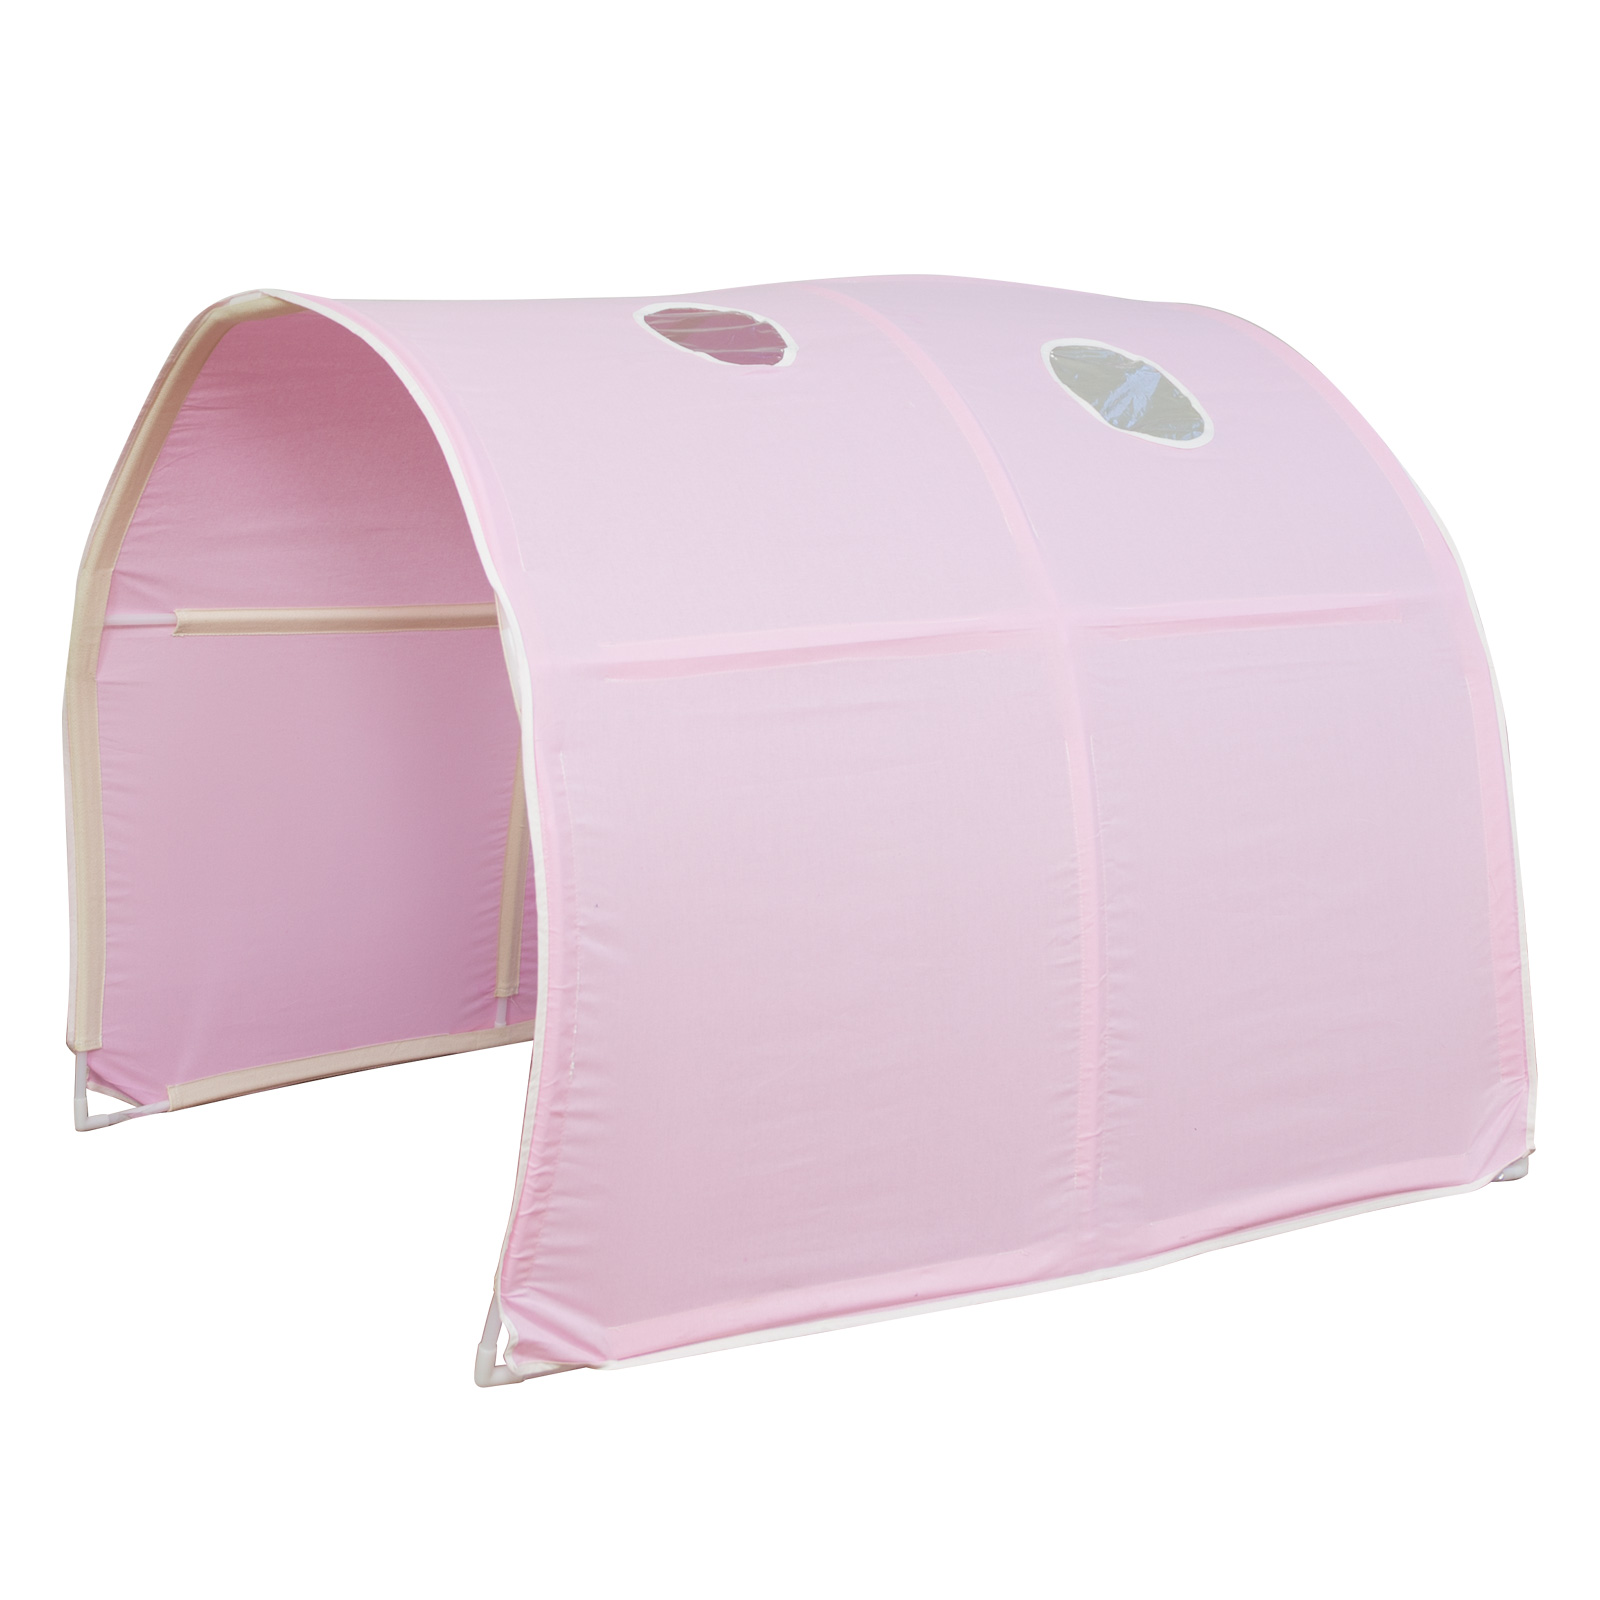 Kinderbett Tunnel Childrens Bed Tunnel Bed Tent Bunk Bed Cabin Bed Accessories Pink